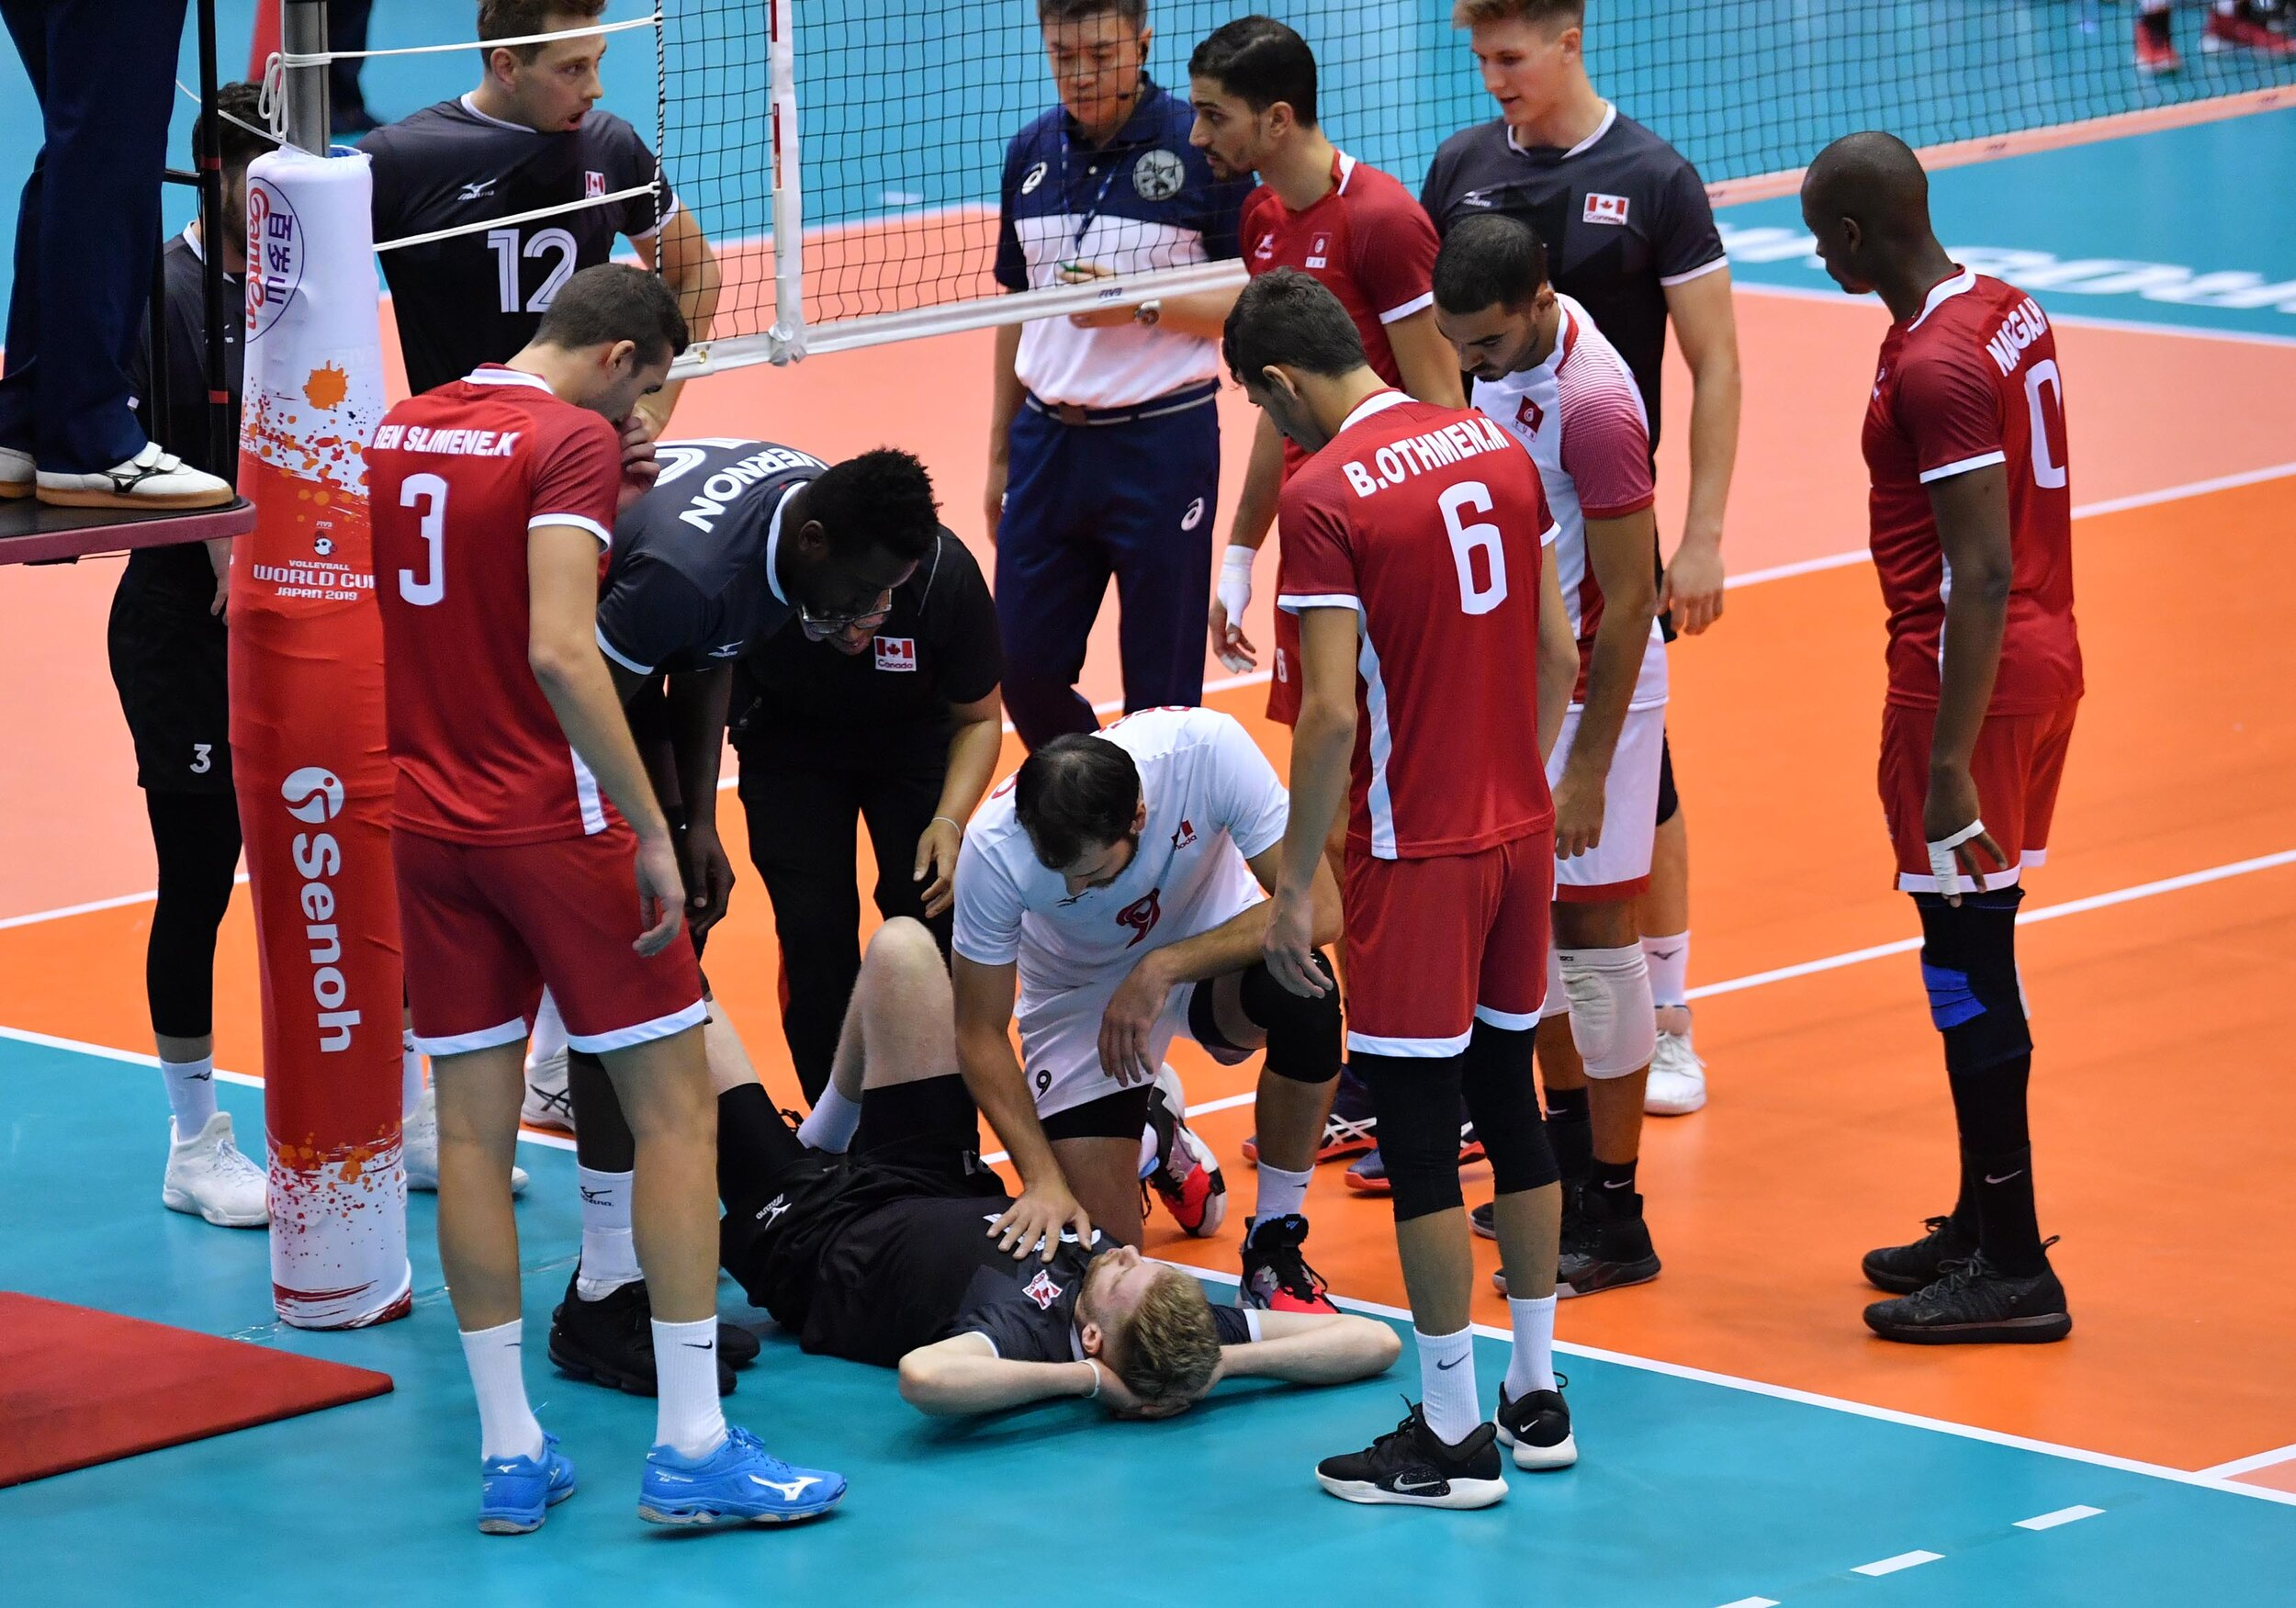 Setter Brett Walsh injured his ankle mid-way through the 1st set against Tunisia and will be out for the remainder of the tournament Photo: FIVB